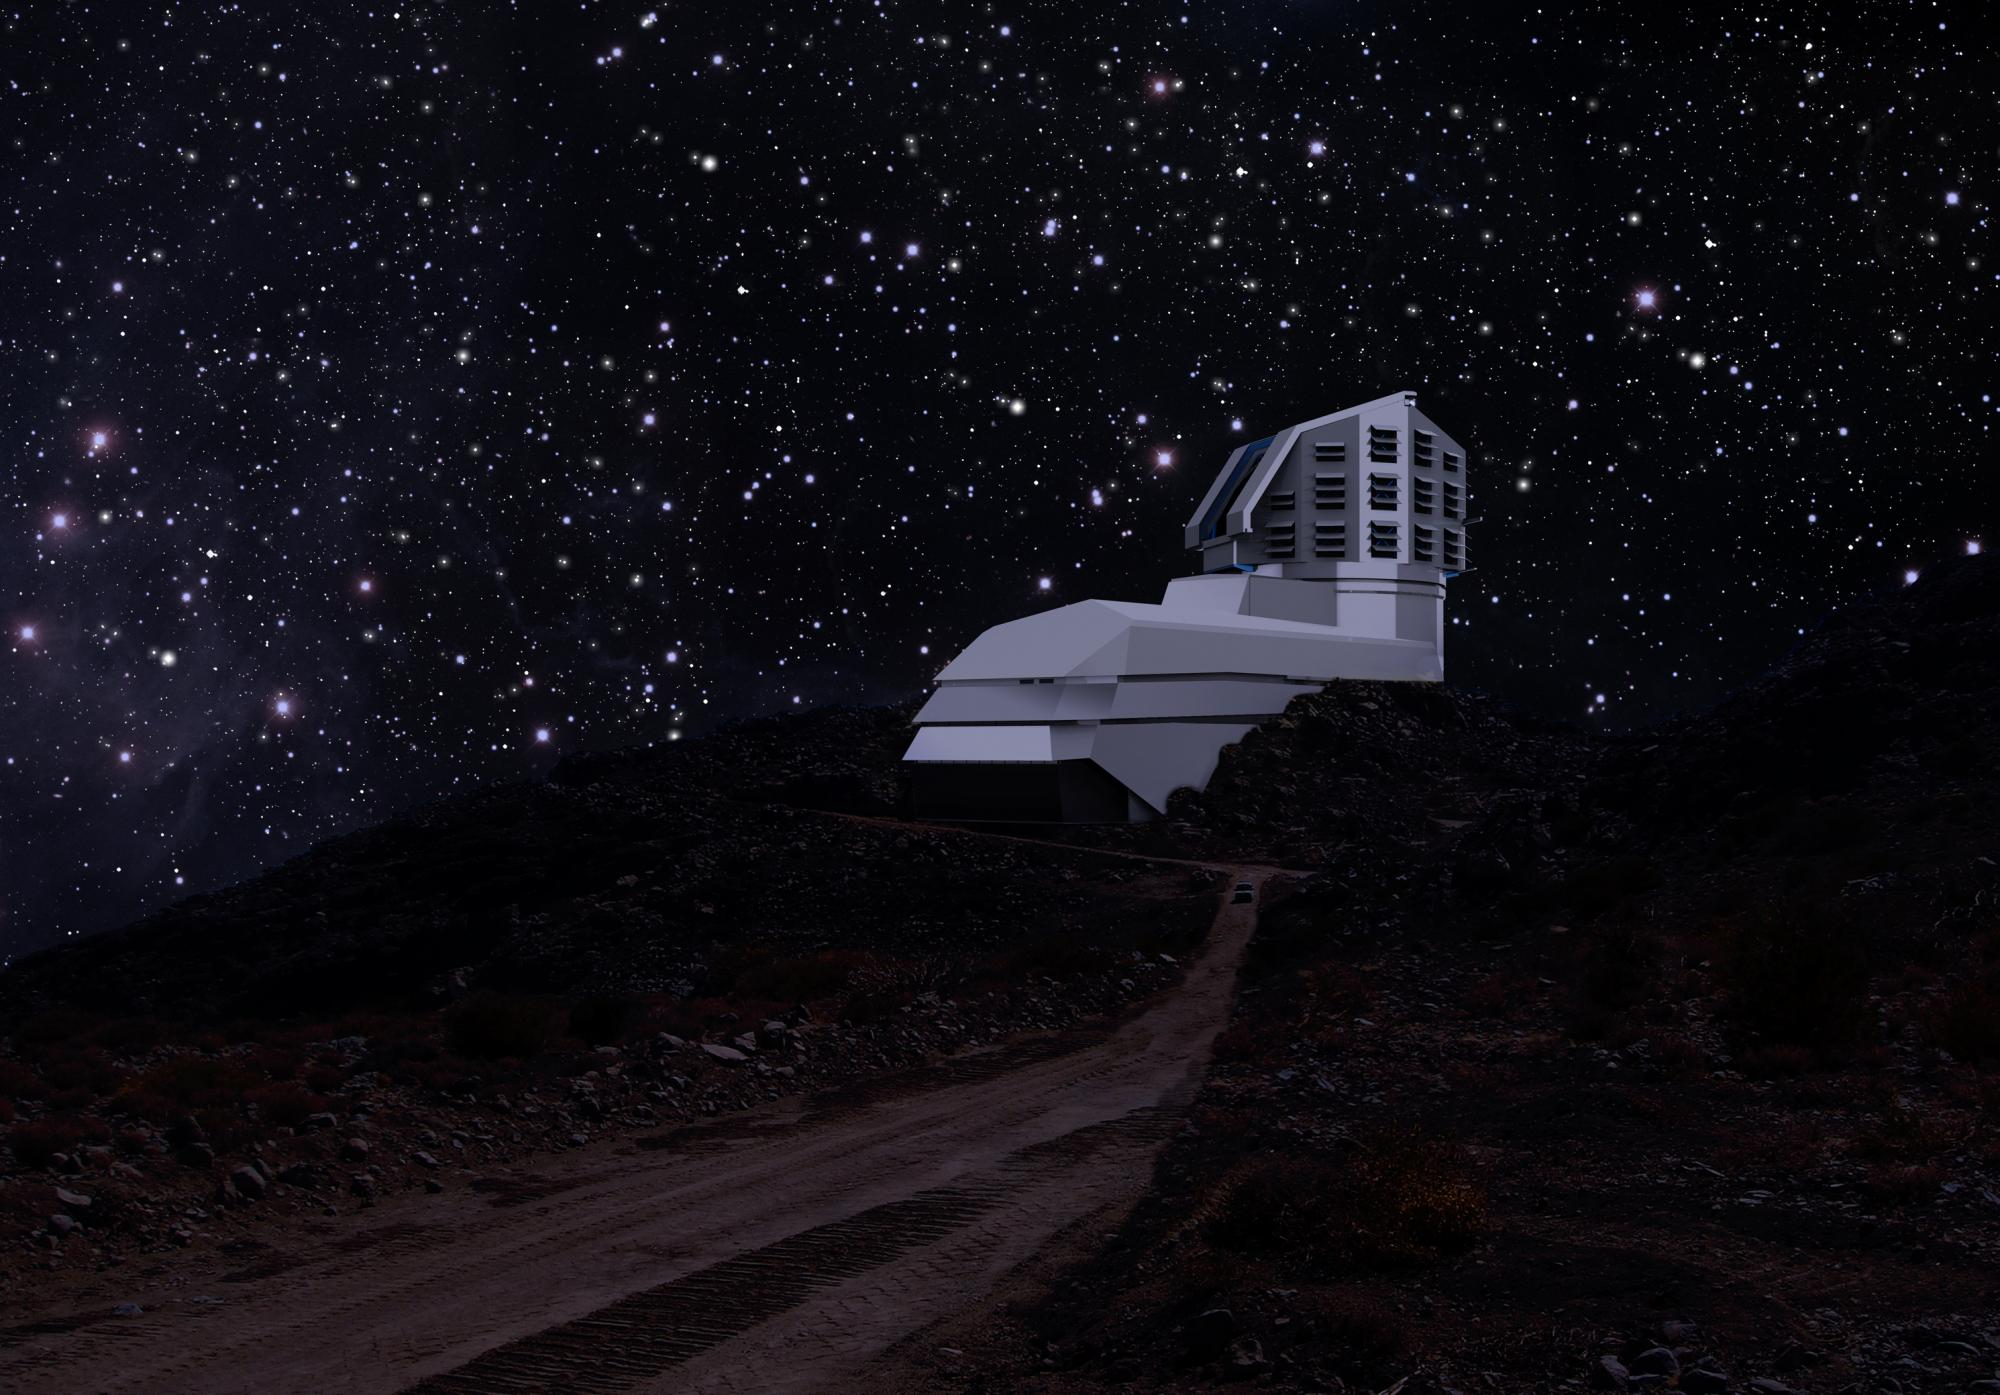 Located in the foothills of the Andes Mountains in Chile, the Large Synoptic Survey Telescope will photograph the entire Southern Hemisphere of the sky every three days for ten years beginning in 2022.